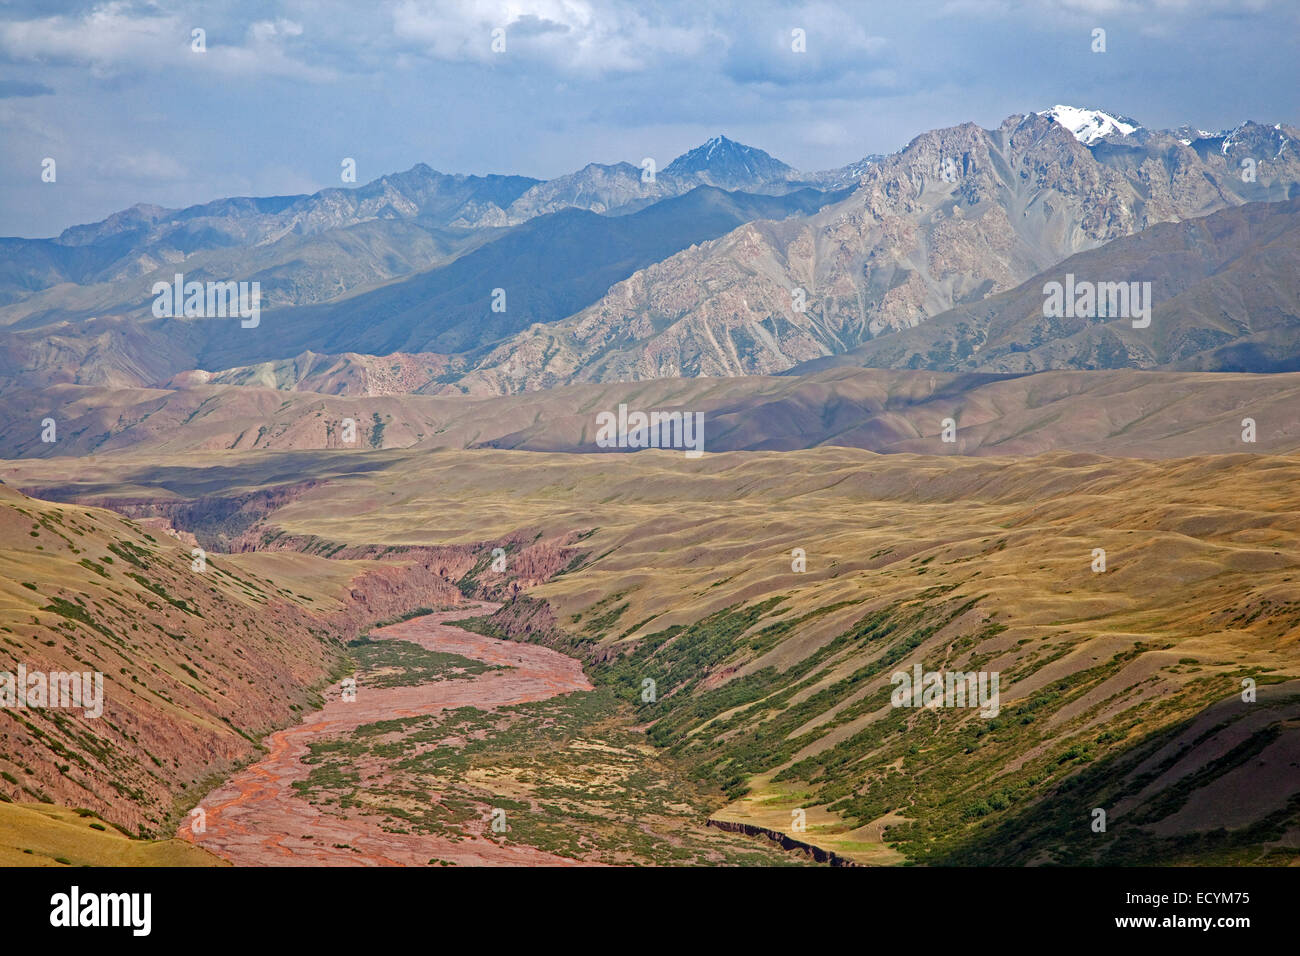 Riverbed and mountains along the Irkeshtam pass, border crossing between Kyrgyzstan and Xinjiang, China - Stock Image